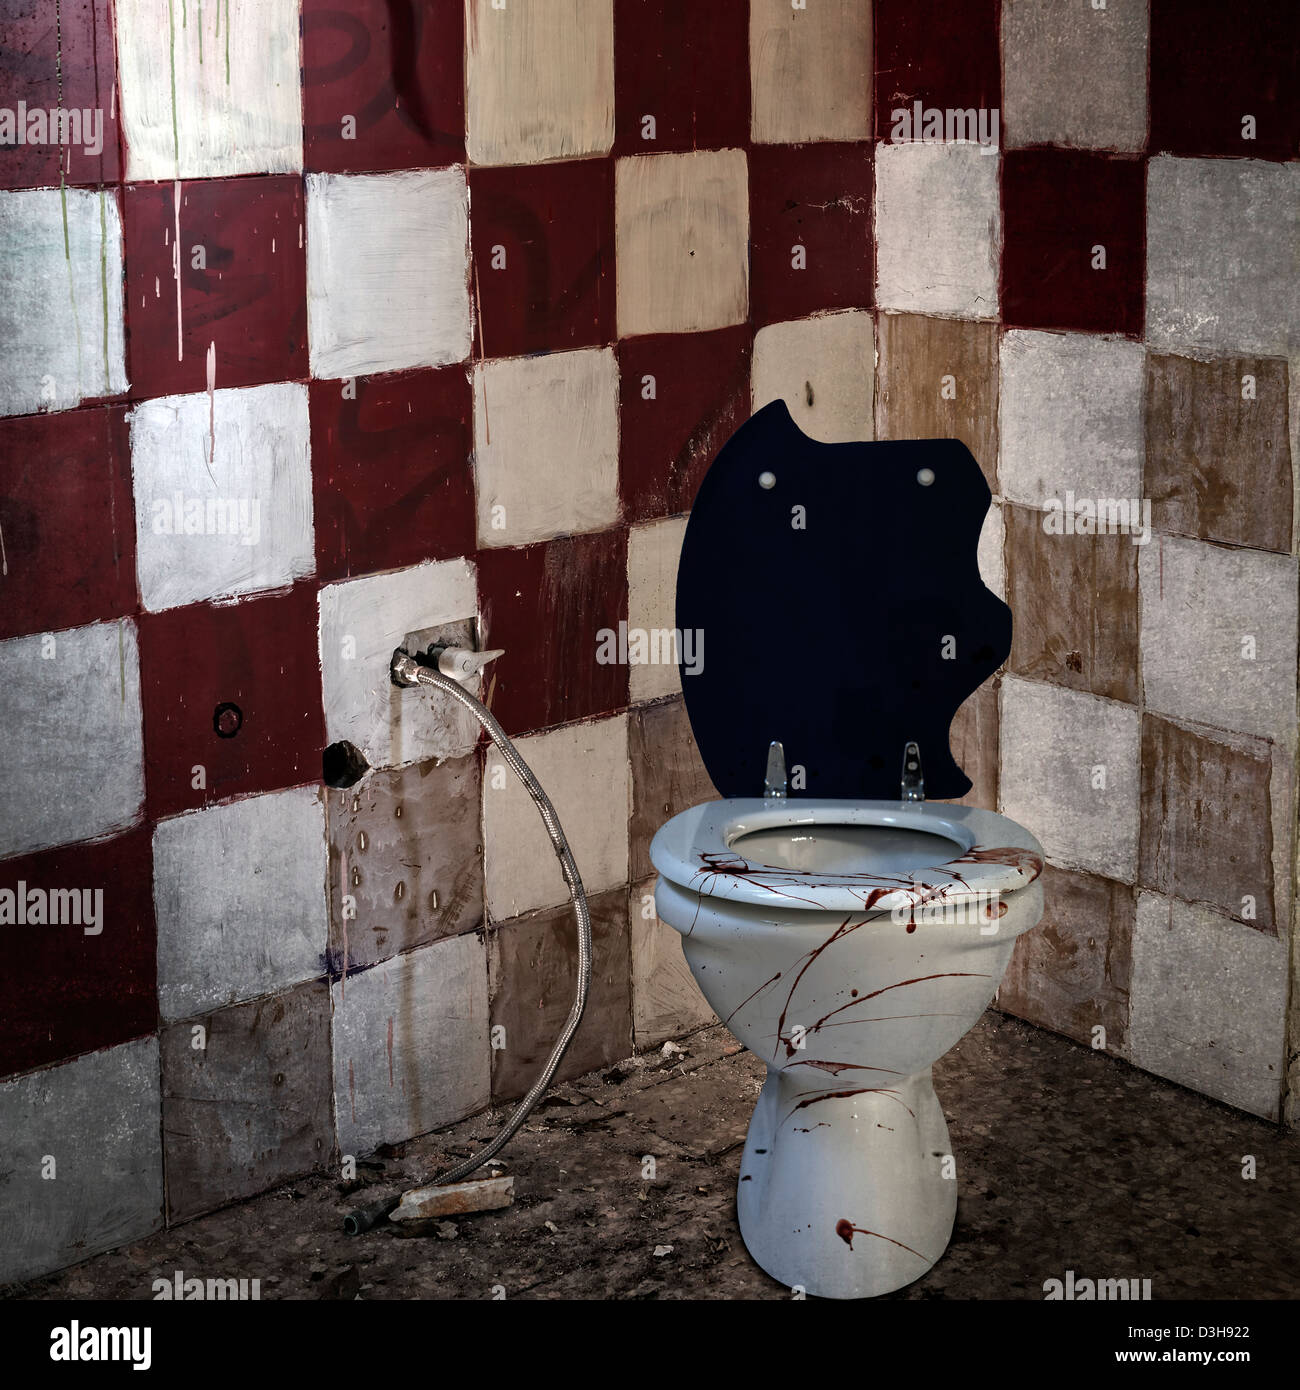 a bloody water-closet in an old, abandoned bathroom - Stock Image